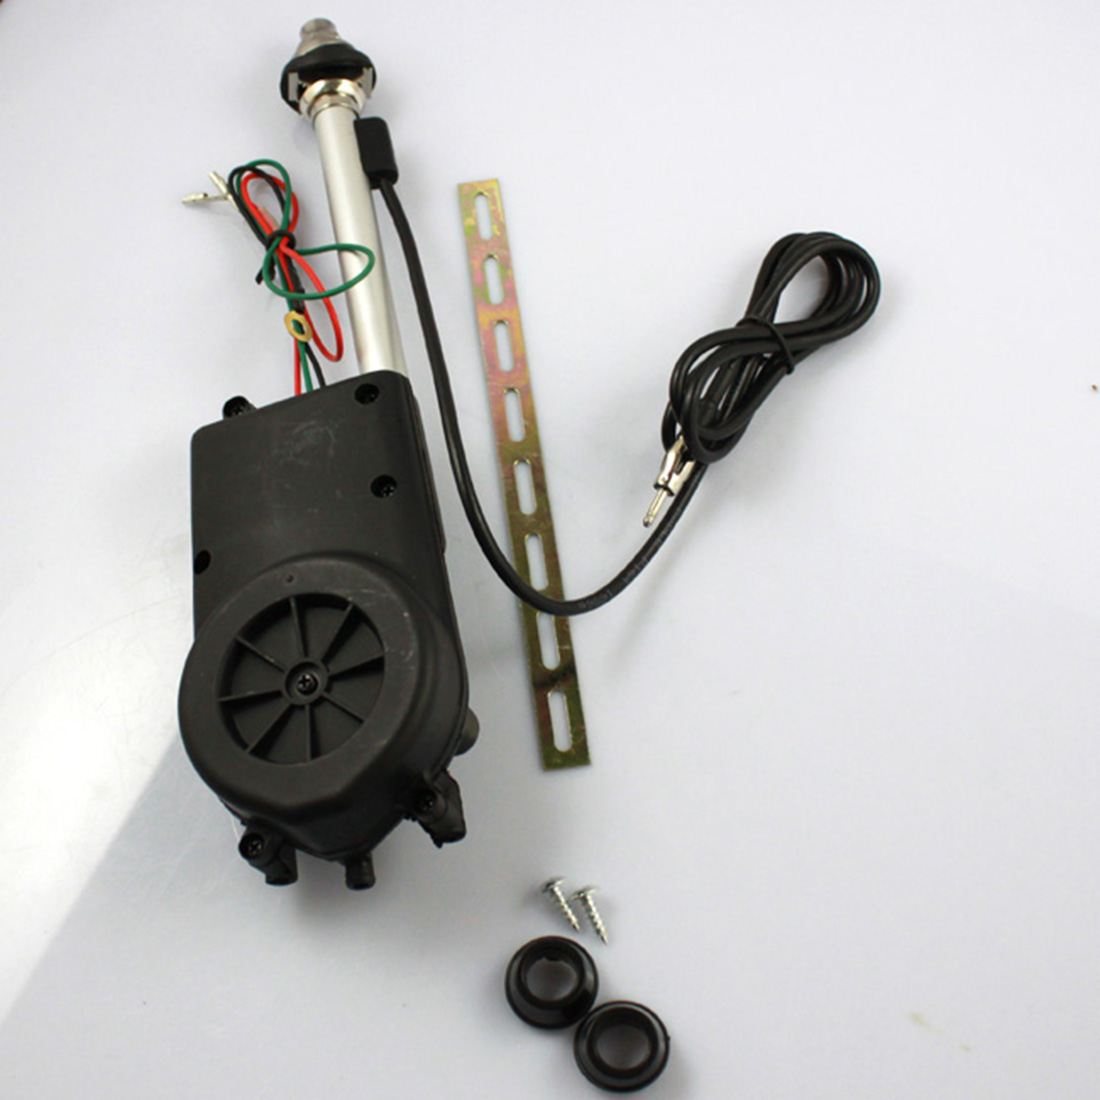 Radio Shack Electric Motor Kit